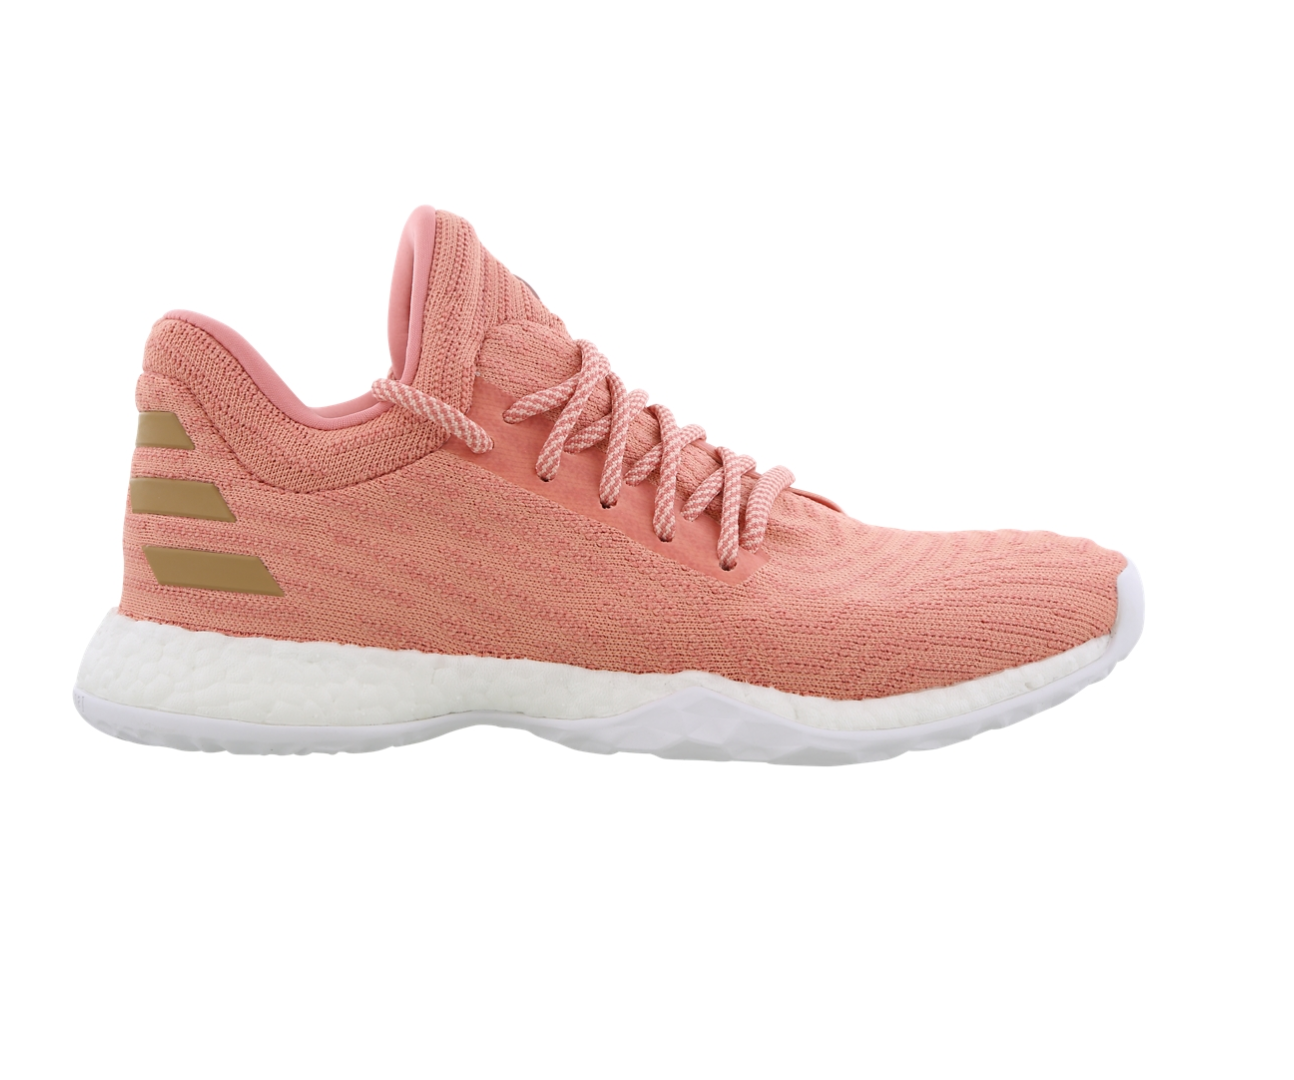 Adidas pour Hommes Durcir Vol 1 Ls Pk Pink Pink Pink Trainers CG5108 ec1ade